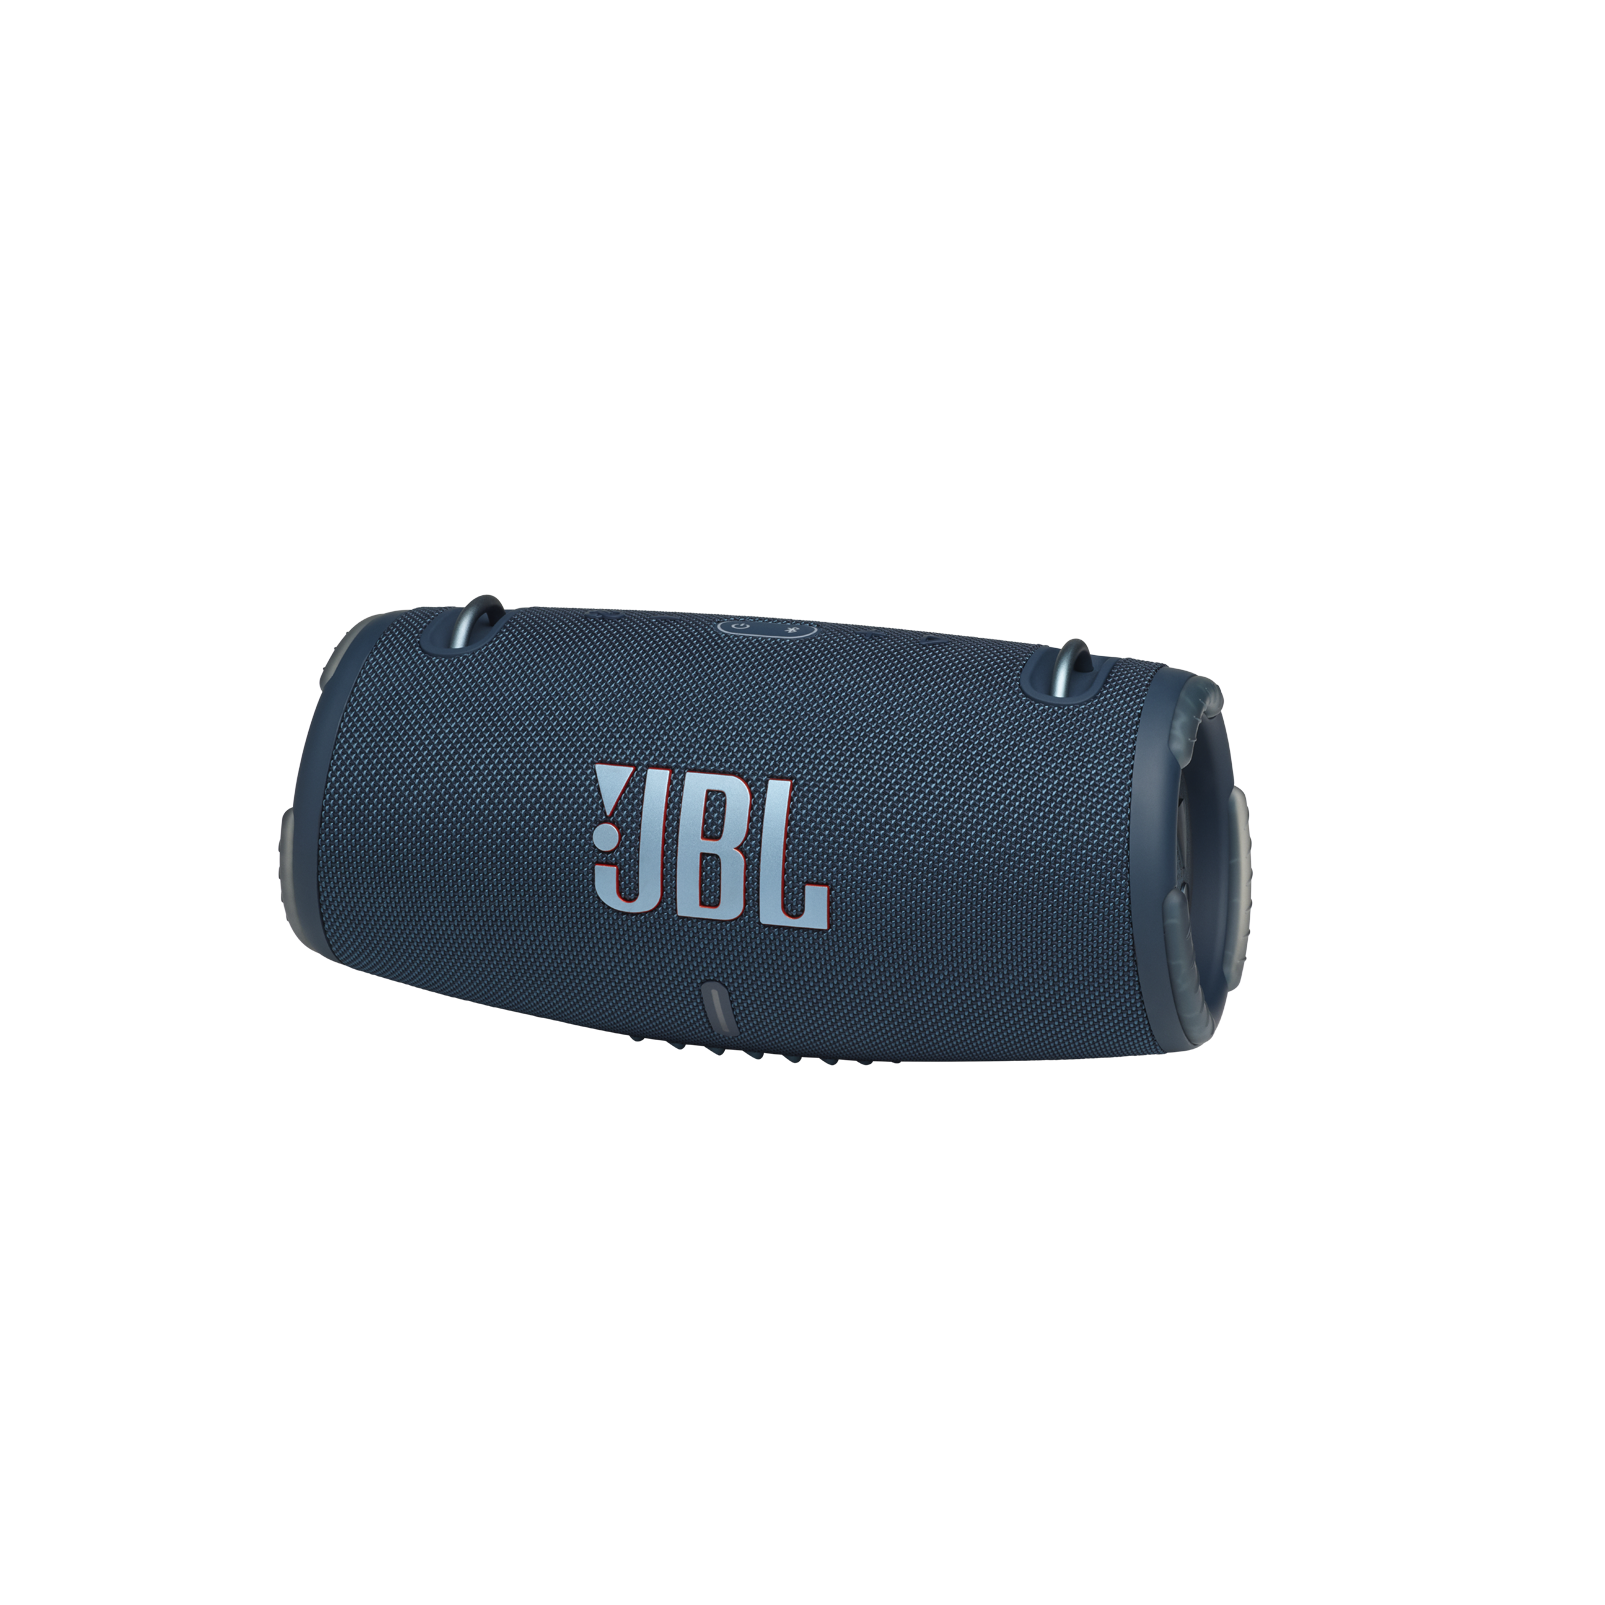 JBL Xtreme 3 - Blue - Portable waterproof speaker - Detailshot 4